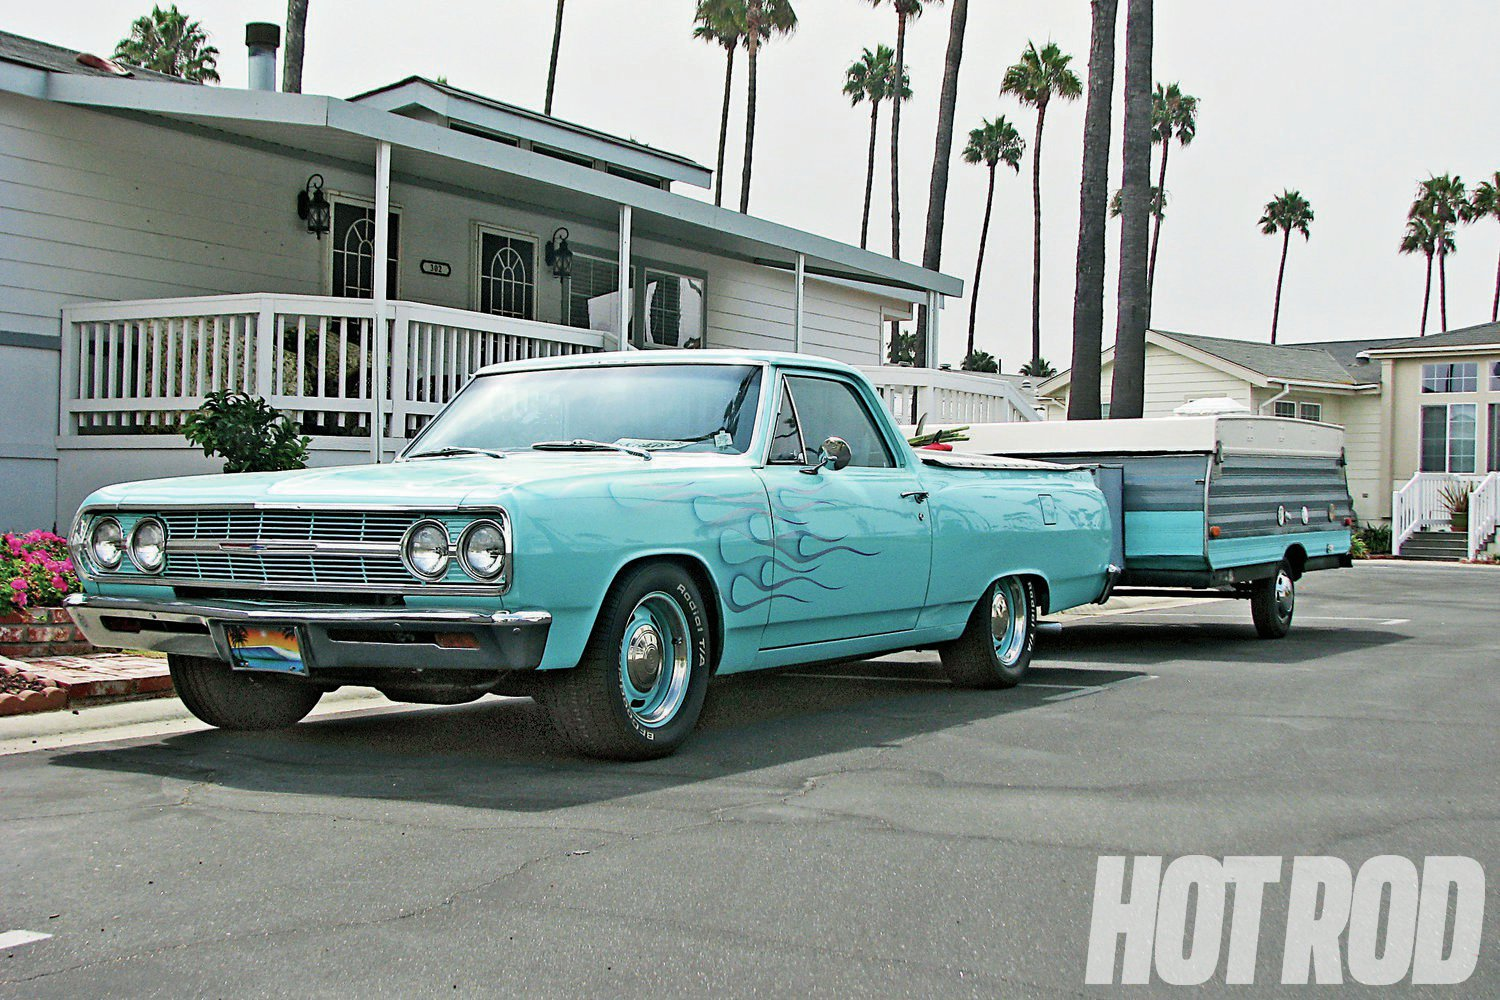 hight resolution of cool dude dunk loves to hit socal beaches in his 65 el camino camp